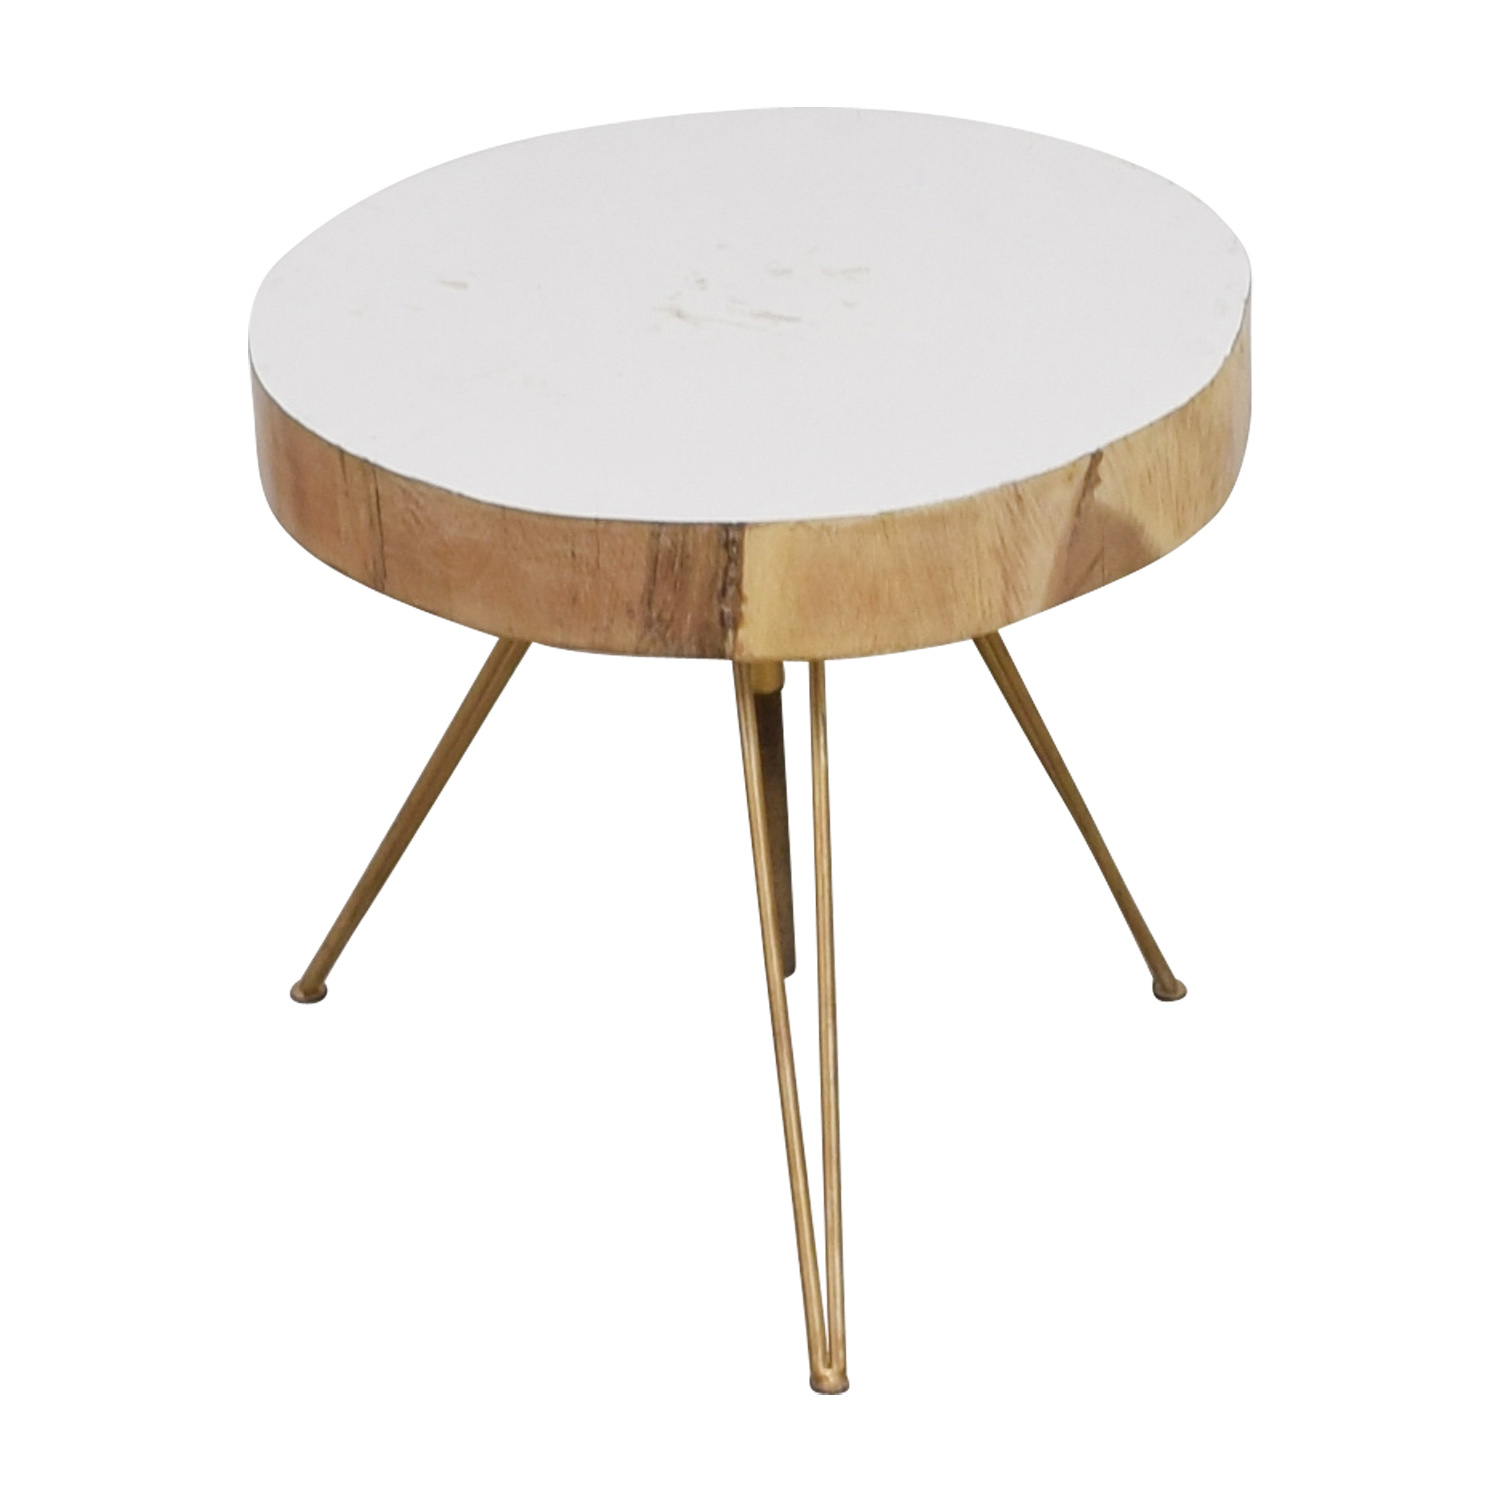 shop Biarritz Suar Biarritz Suar White Wood and Bronze Iron Accent Table online